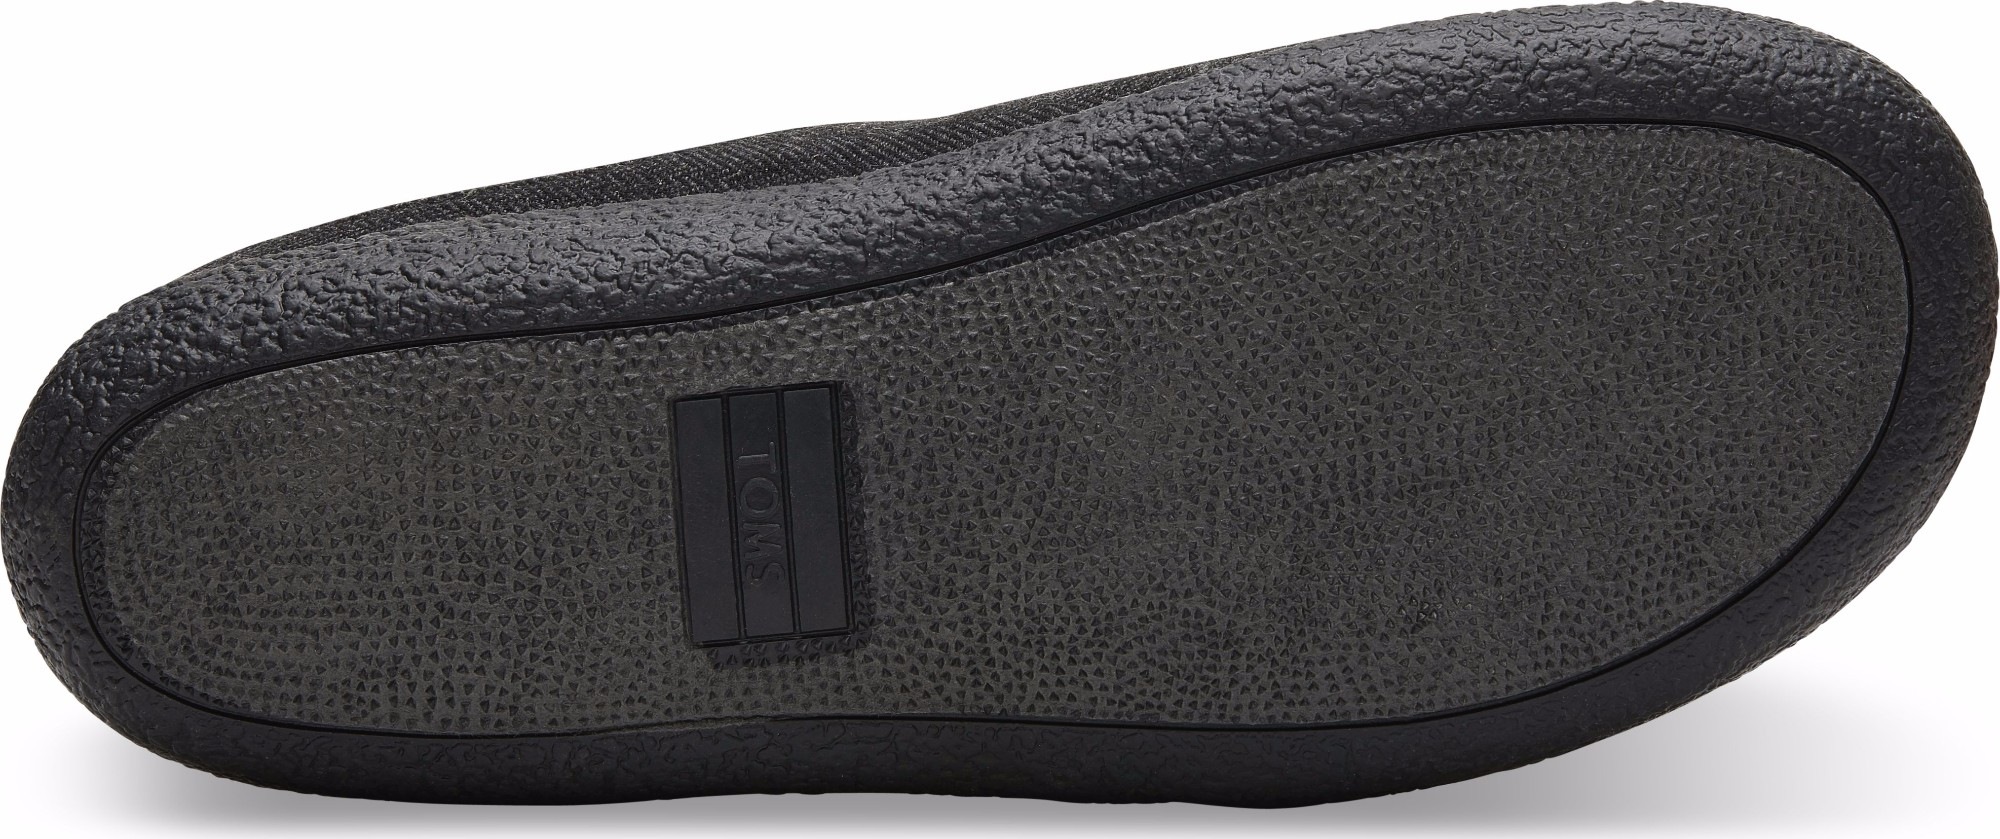 993ab4103 Previous. TOMS Herringbone Woolen Men'S Berkeley Slipper Black ...